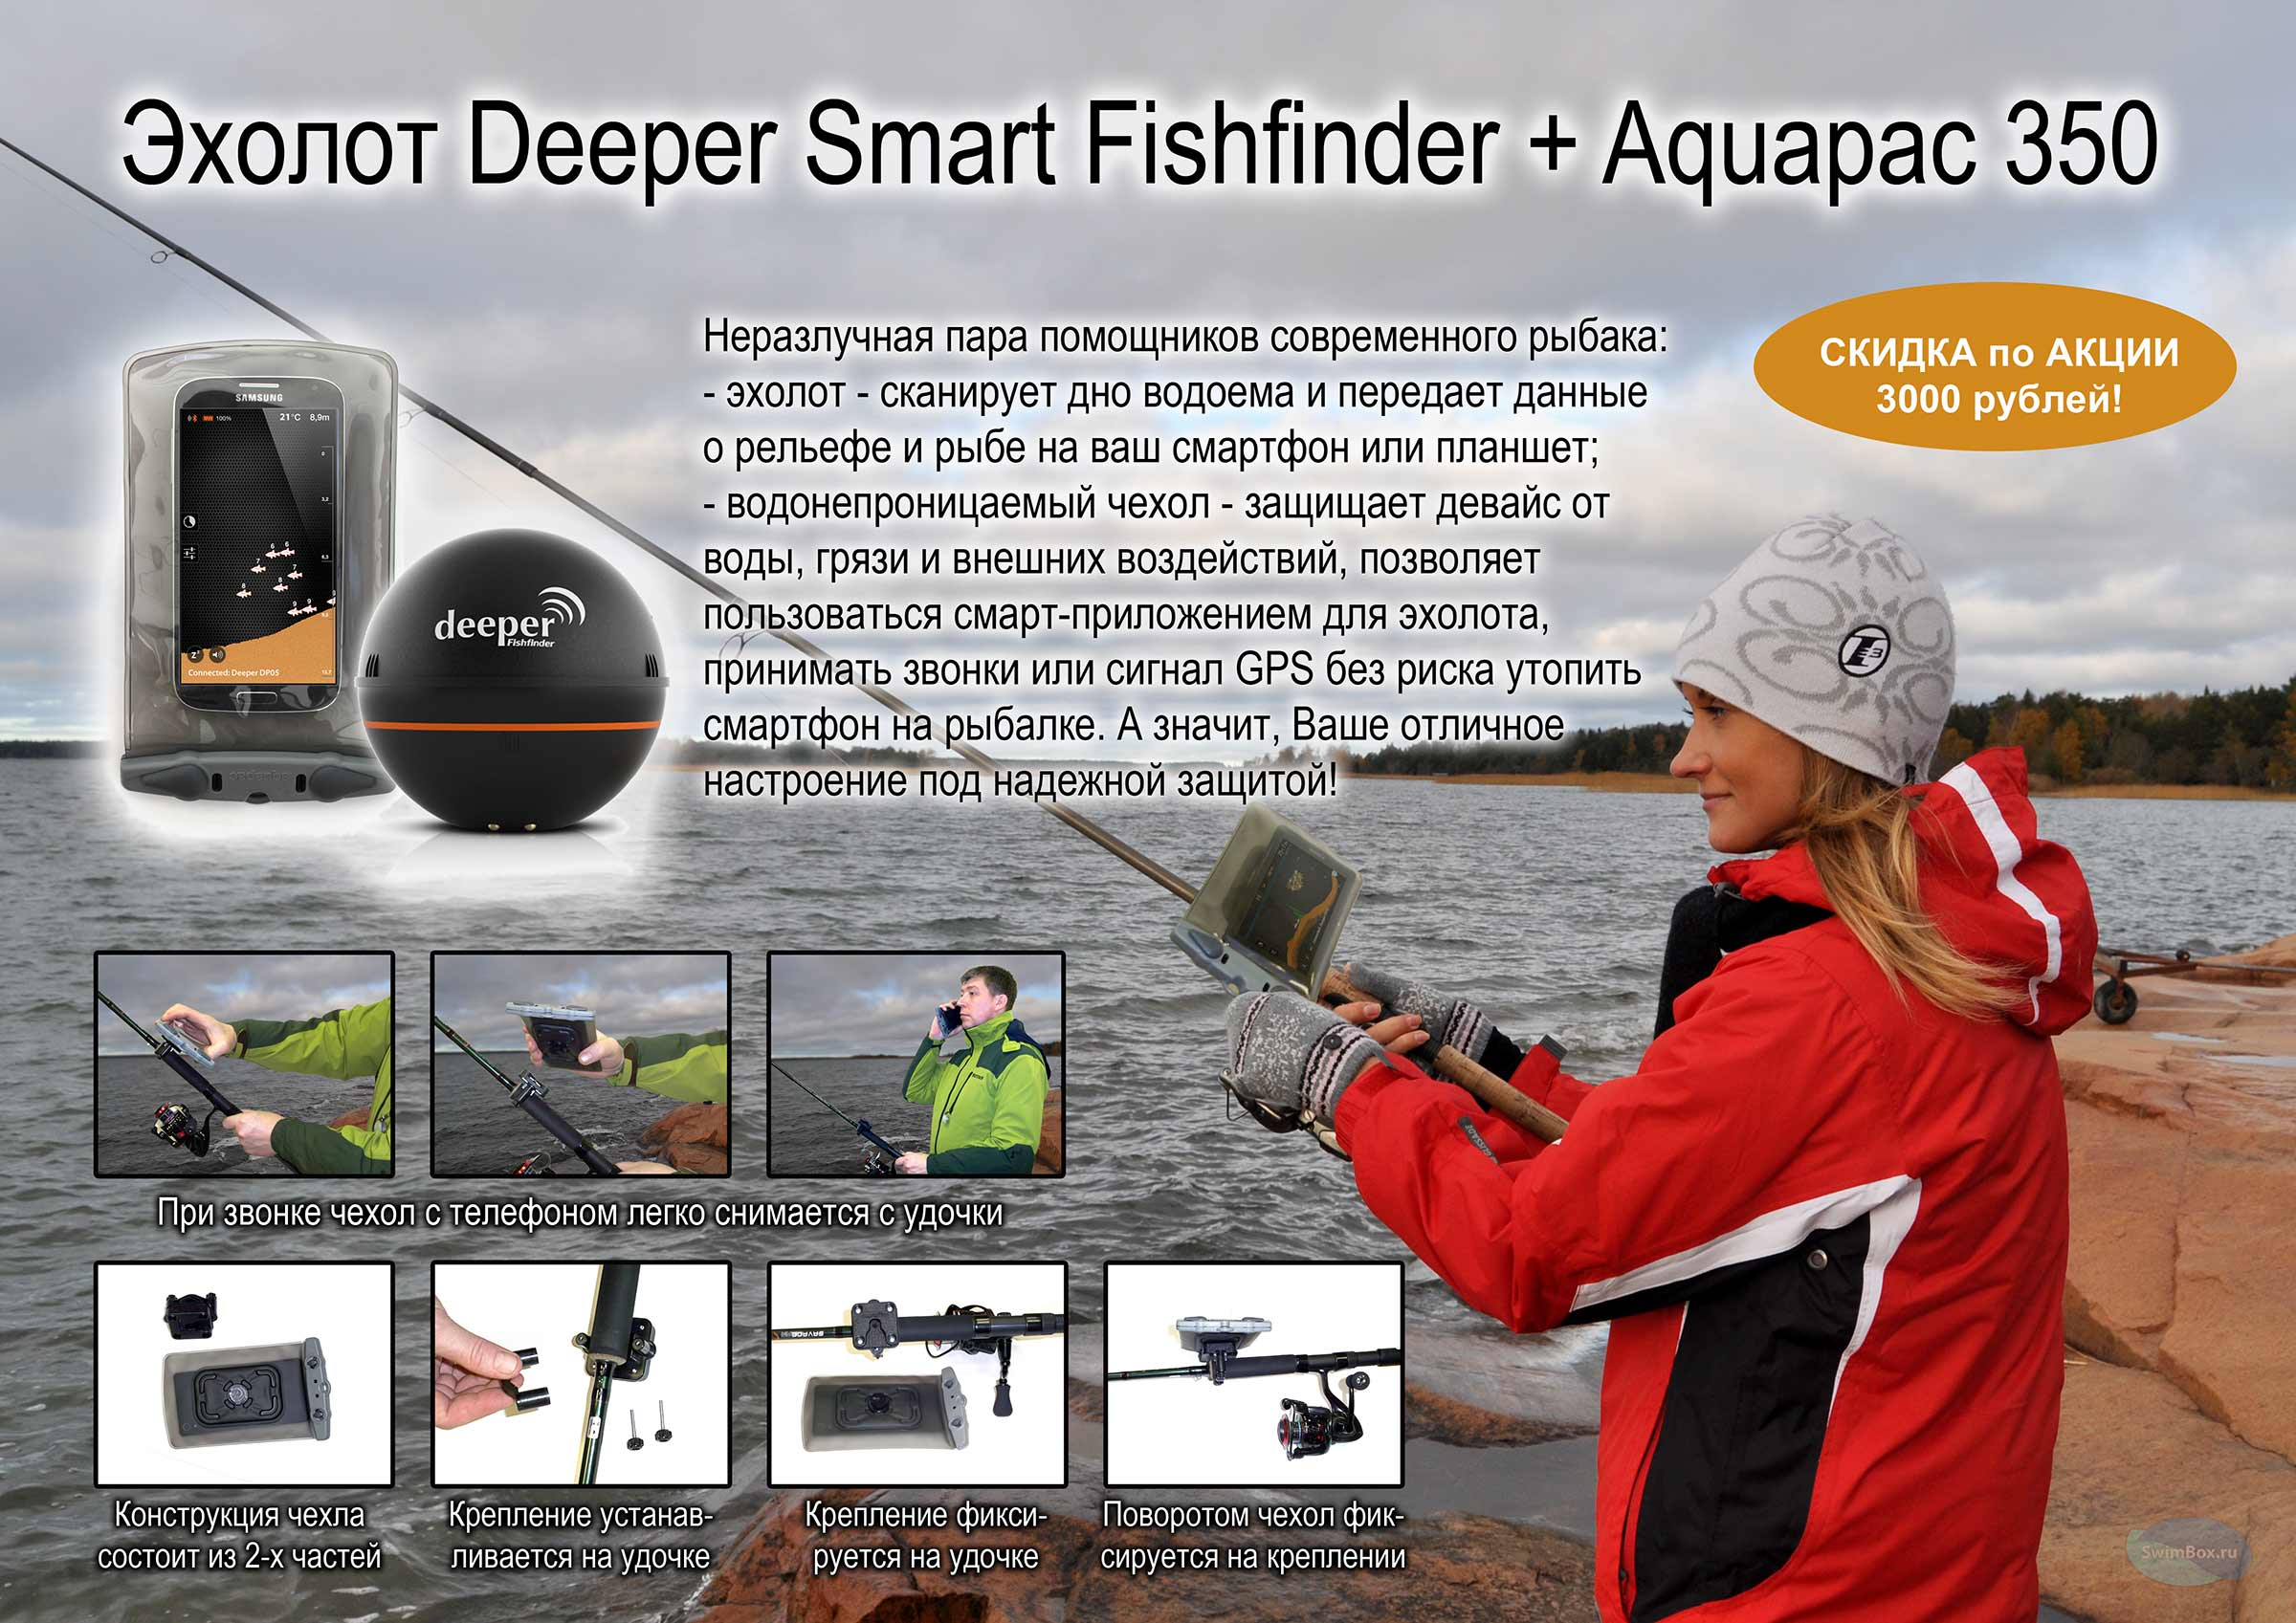 Эхолот Deeper Smart Fishfinder + Aquapac 350 Фото 5